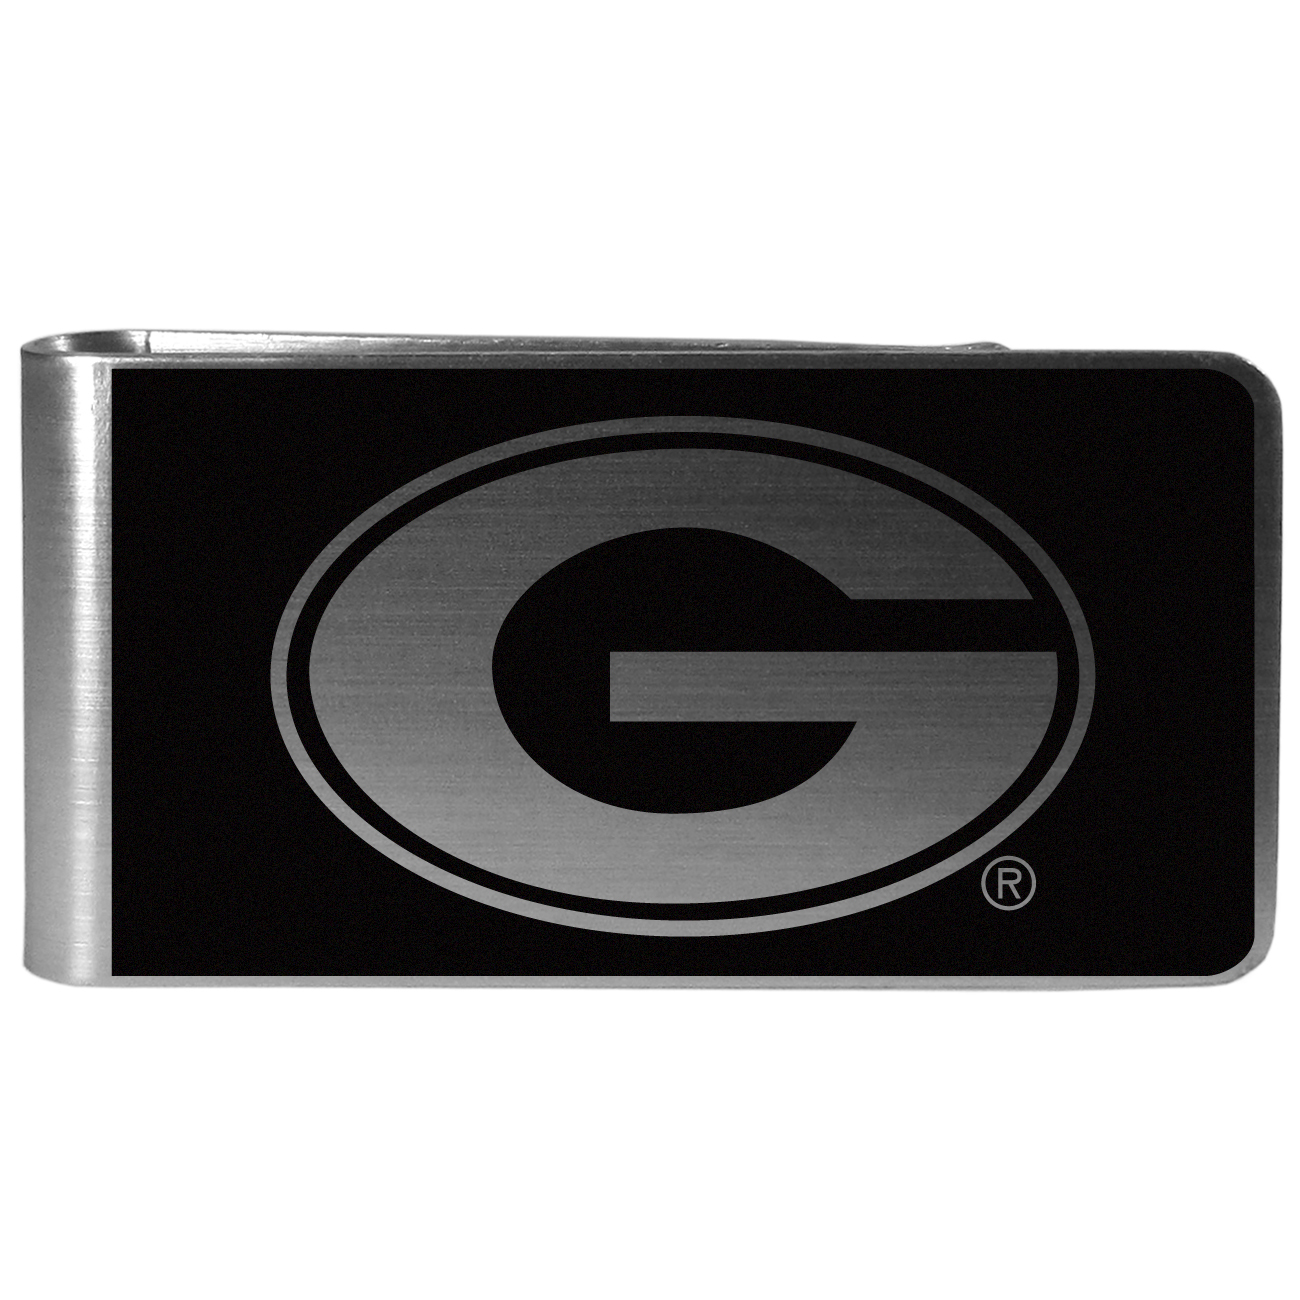 Georgia Bulldogs Black and Steel Money Clip - Our monochromatic steel money clips have a classic style and superior quality. The strong, steel clip has a black overlay of the Georgia Bulldogs logo over the brushed metal finish creating a stylish men's fashion accessory that would make any fan proud.